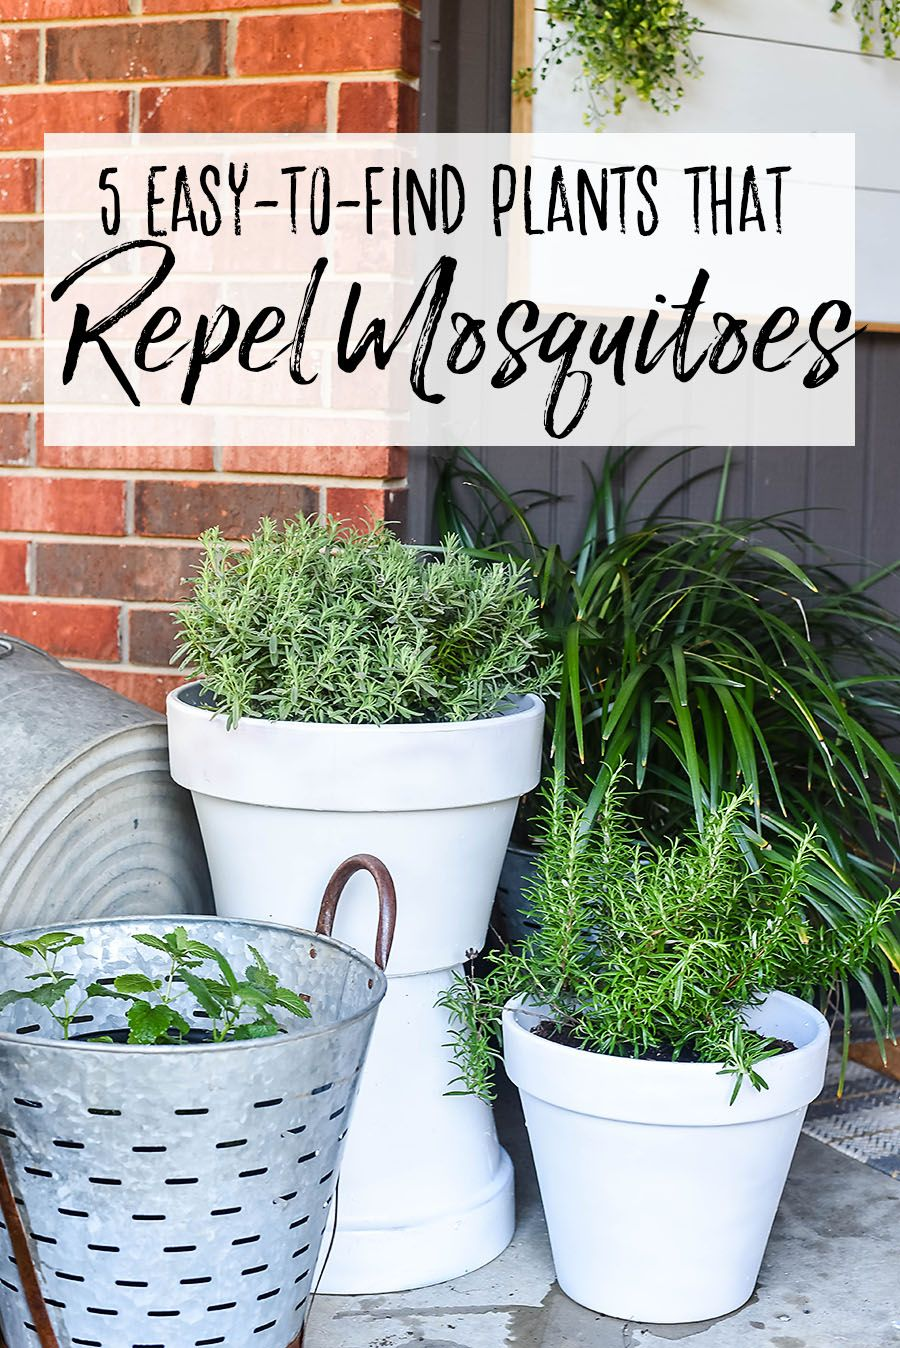 5 Plants That Repel Mosquitoes for Your Front Porch is part of Mosquito repelling plants, Porch plants, Plants, Front porch plants, Front porch garden, Mosquito plants - We've compiled a list of mosquito repelling plants  These plants will repel insect and pest like mosquitos with their natural fragrances, leaving a pleasant smell in your garden this summer  Every summer a word becomes a new curse word in my family   MOSQUITOES! Not only are these nasty little bugs disease carrying and annoying, our whole family (except for my somehow naturally repellent husband)